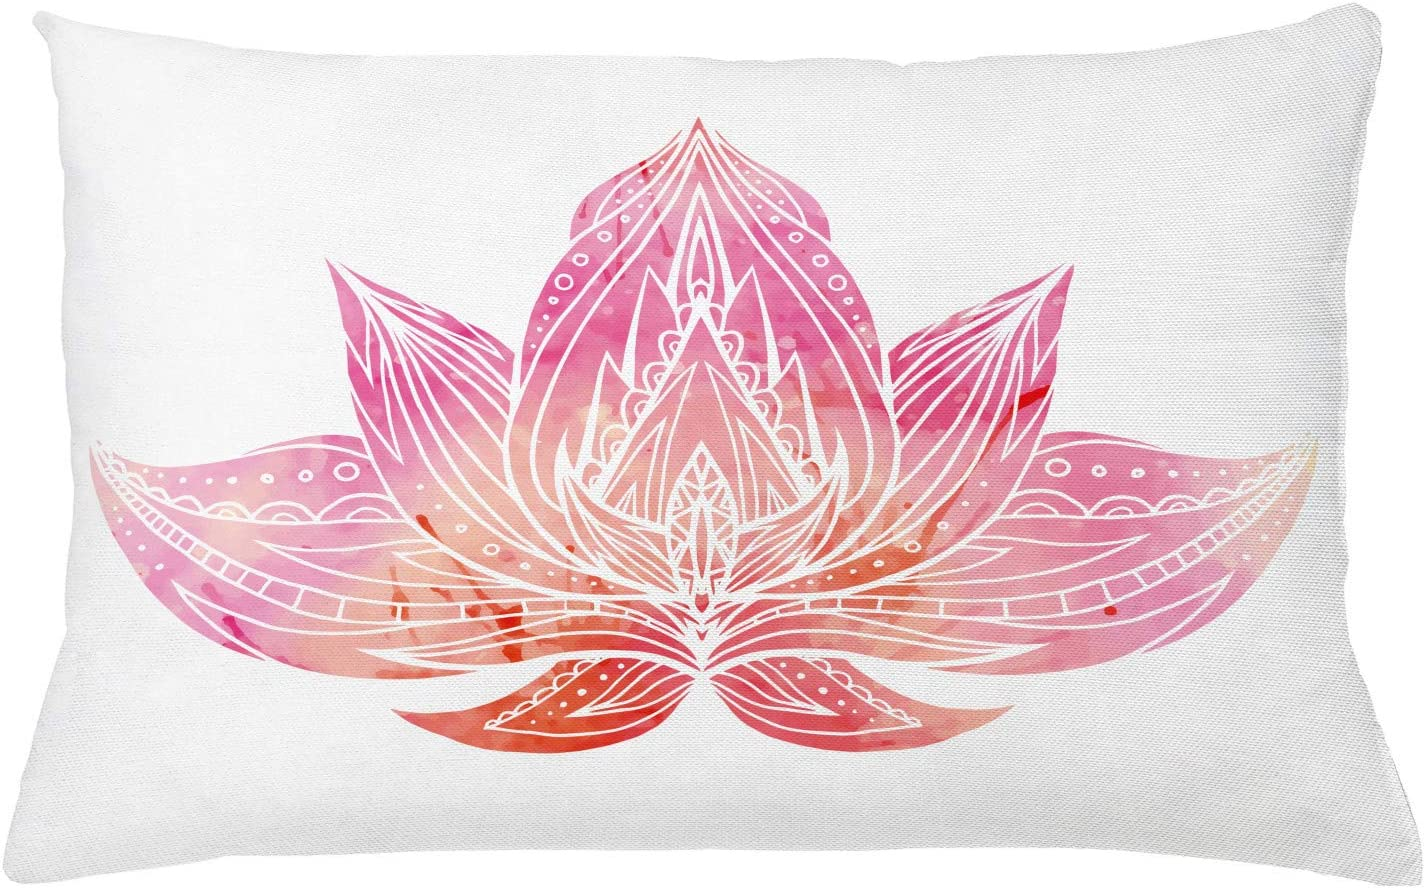 Lunarable Lotus Throw Pillow Cushion Cover Pink Lotus Flower With Ornaments On White Background Boho Style Artwork Decorative Rectangle Accent Pillow Case 26 X 16 Pale Pink And White Home